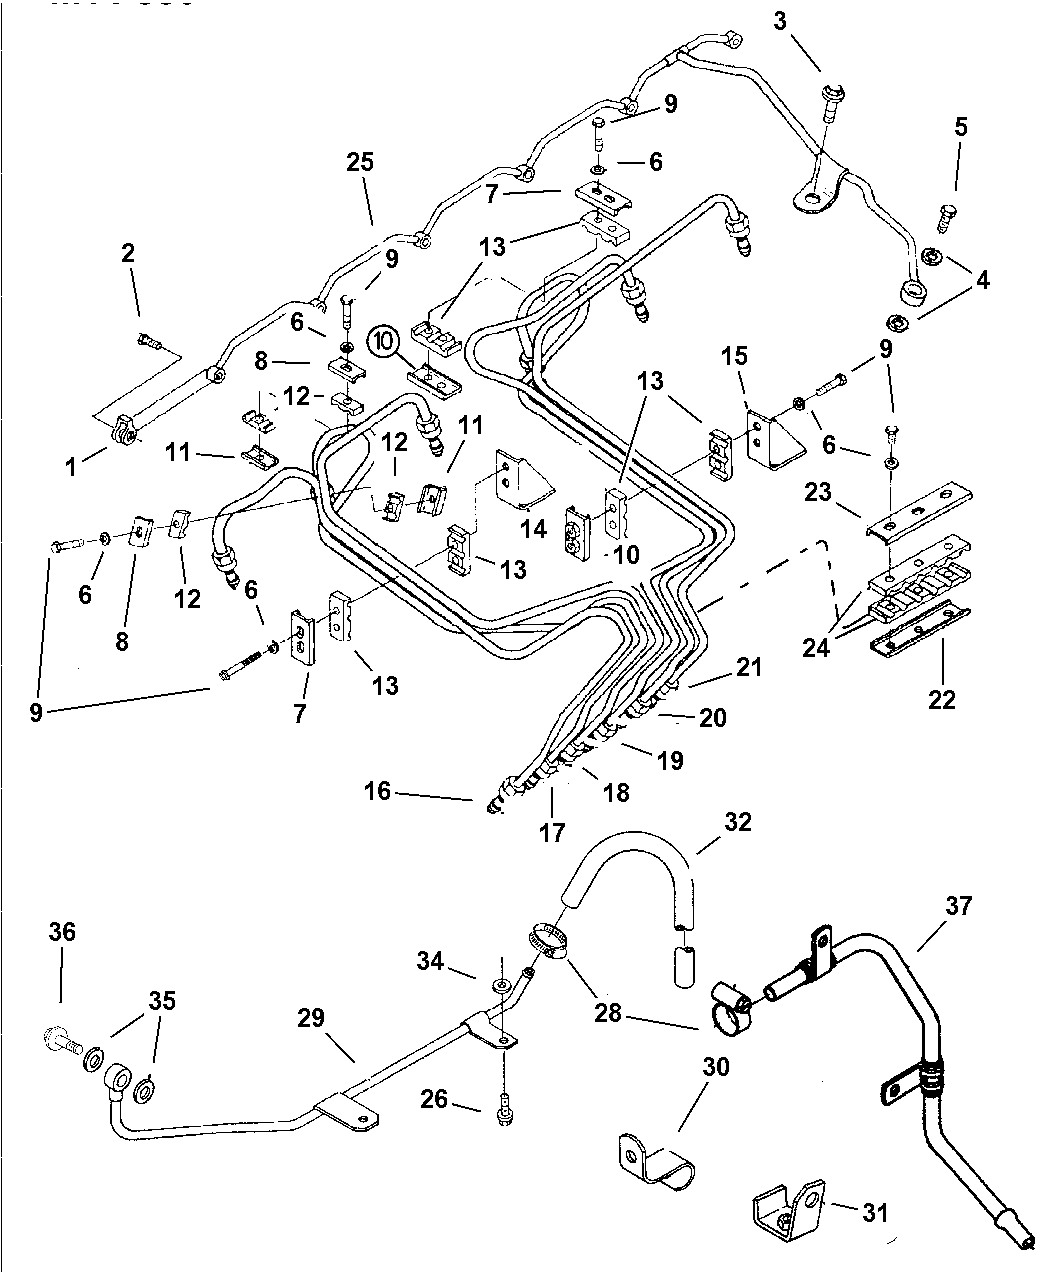 dodge ram 1500 fuel system diagram 4883770aa genuine mopar hose fuel line  4883770aa genuine mopar hose fuel line